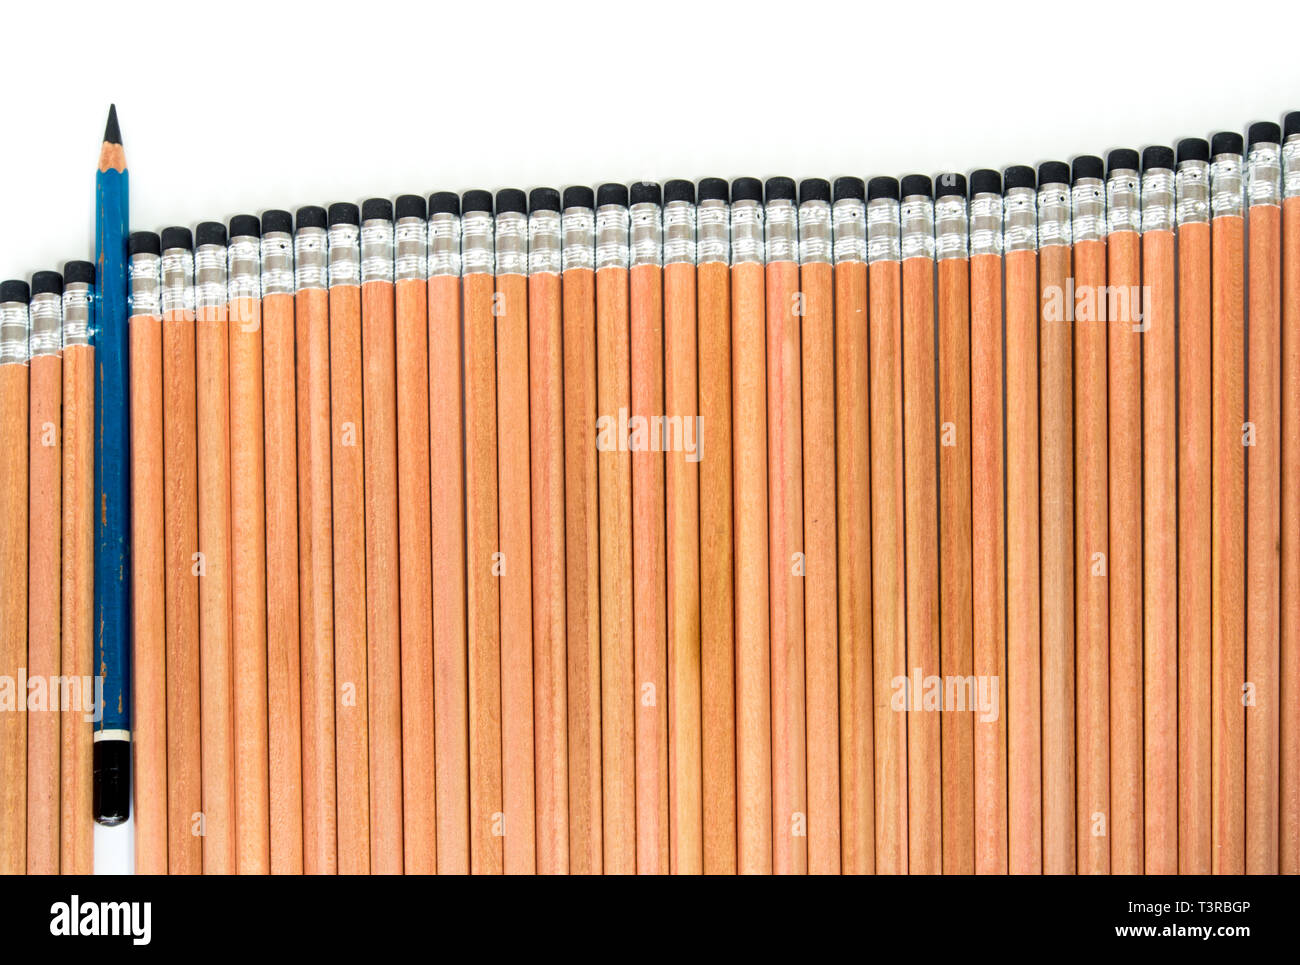 Old EE type pencil in the group of sort orderly new 2B type pencil Stock Photo